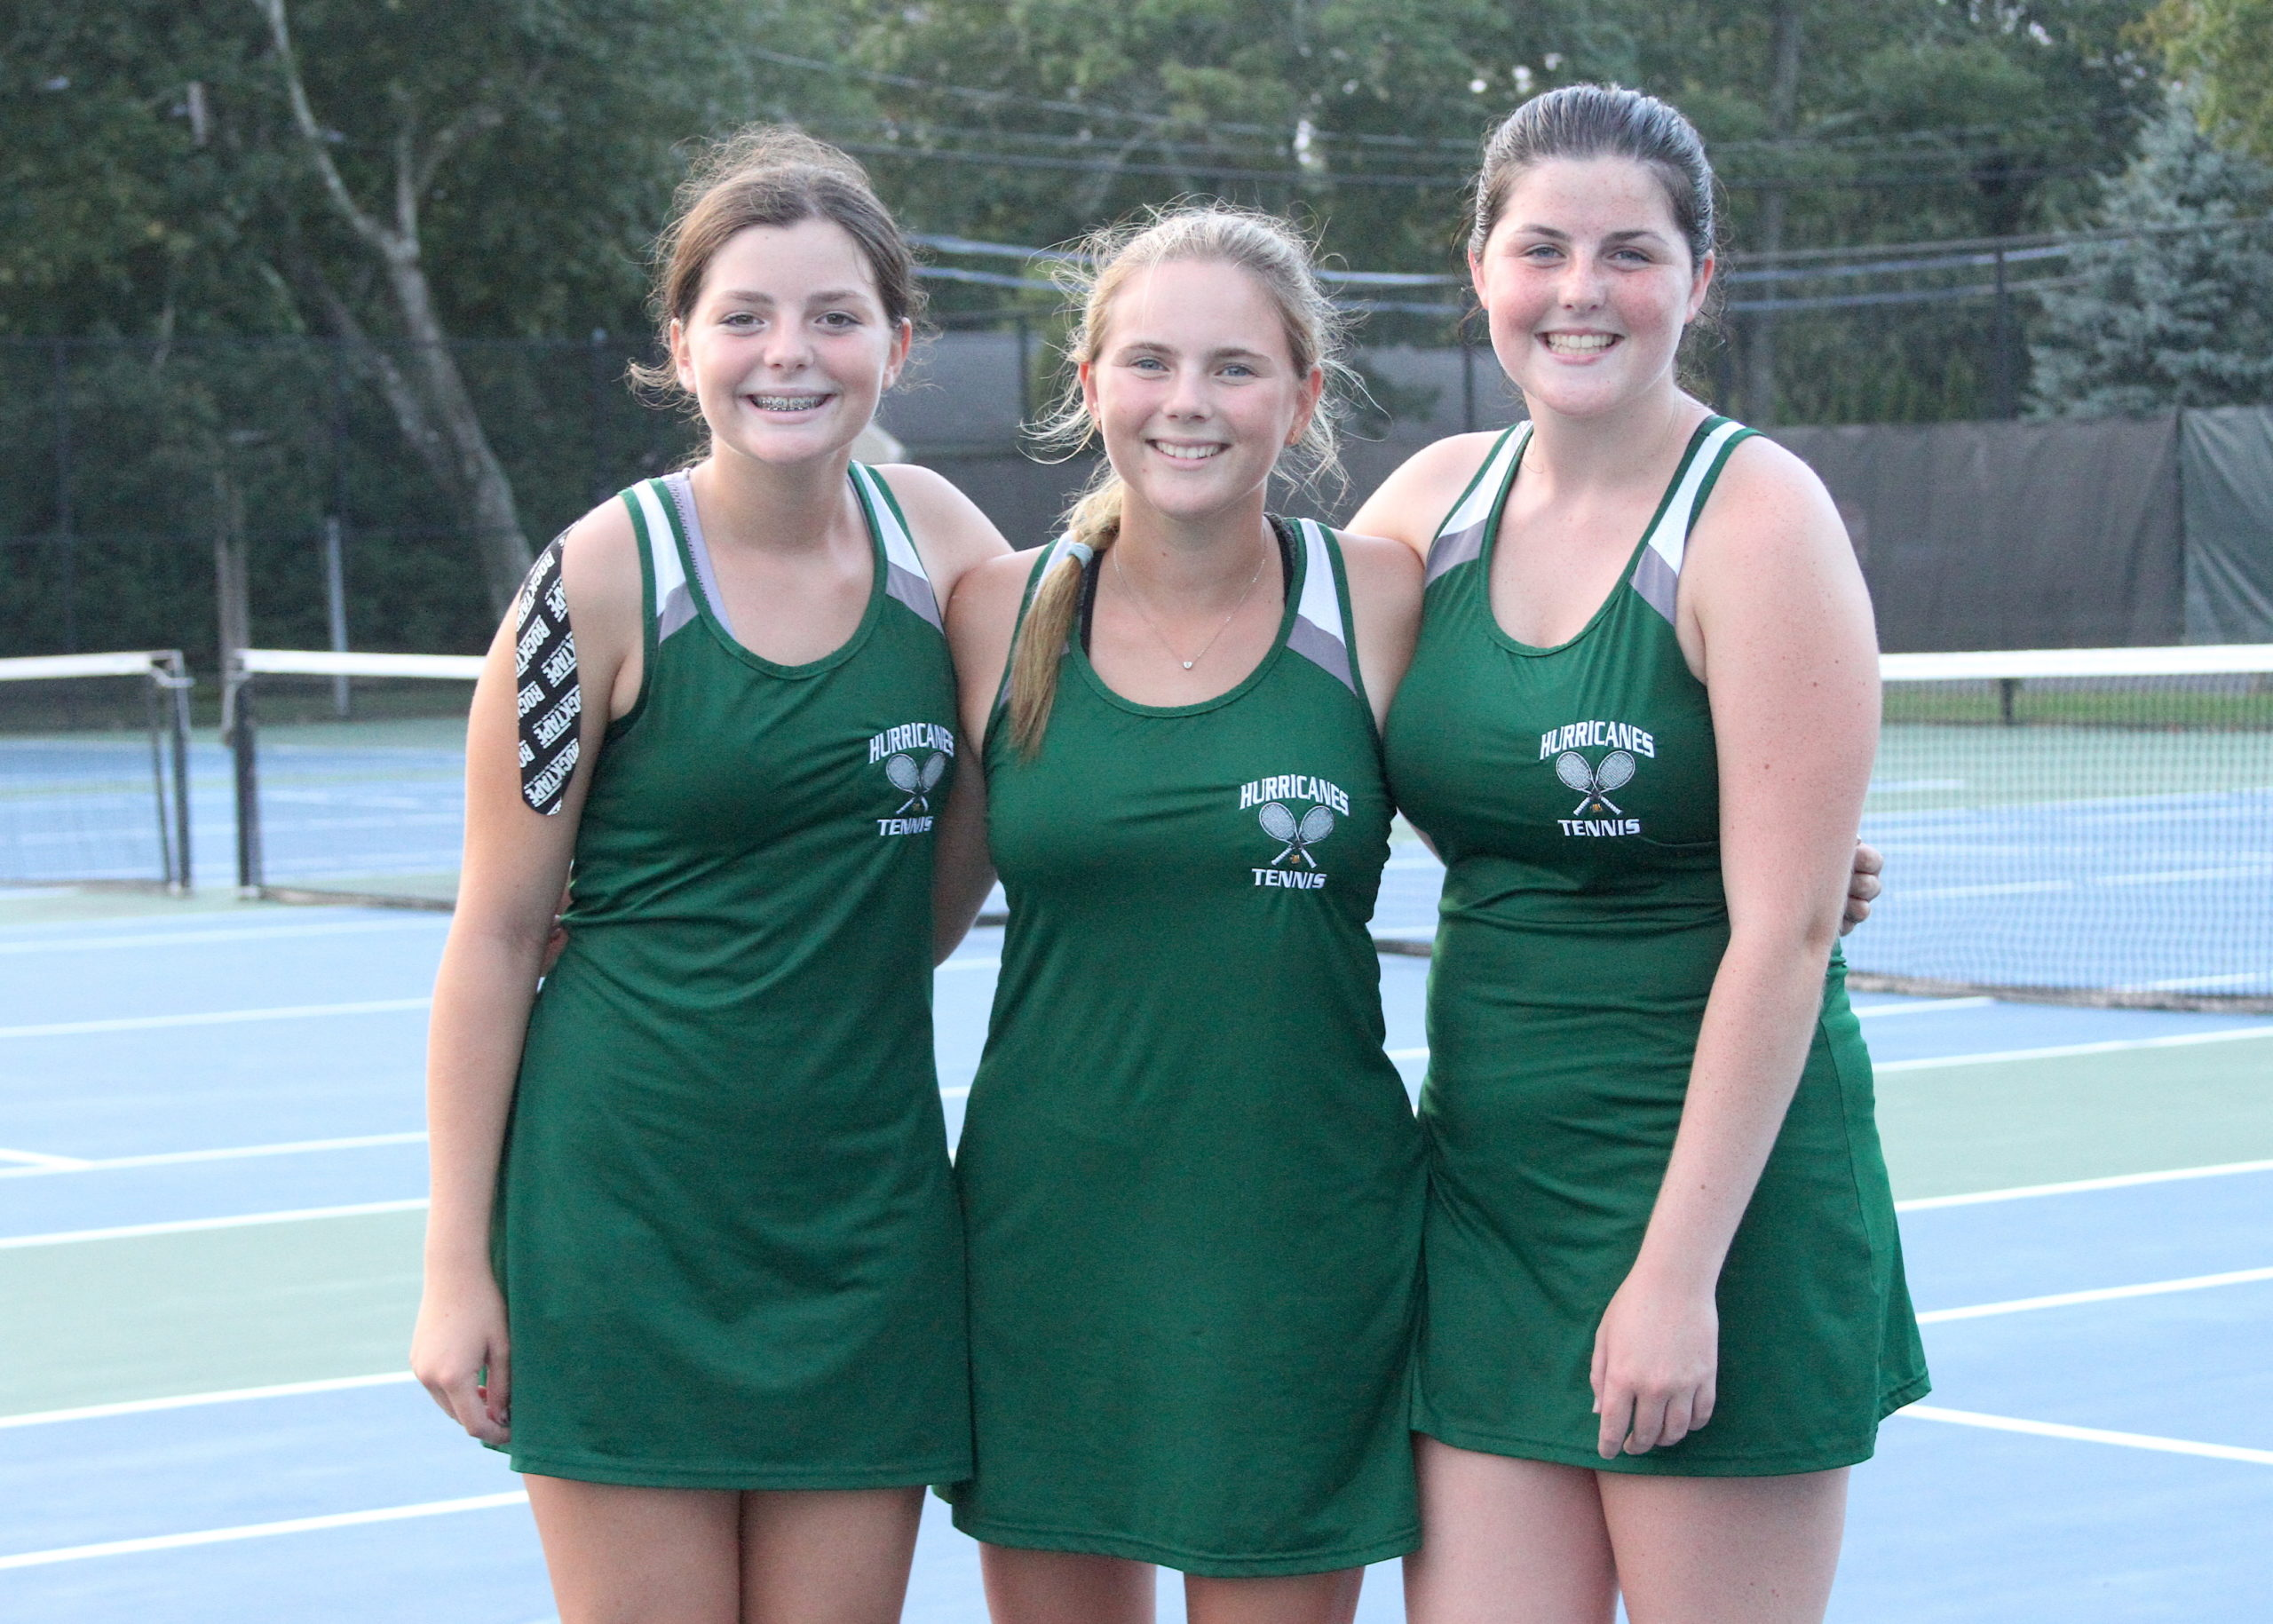 Westhampton Beach sister trio of Ana, Emma and Kylie Way are competing on varsity together for the first time this season. DESIRÉE KEEGAN